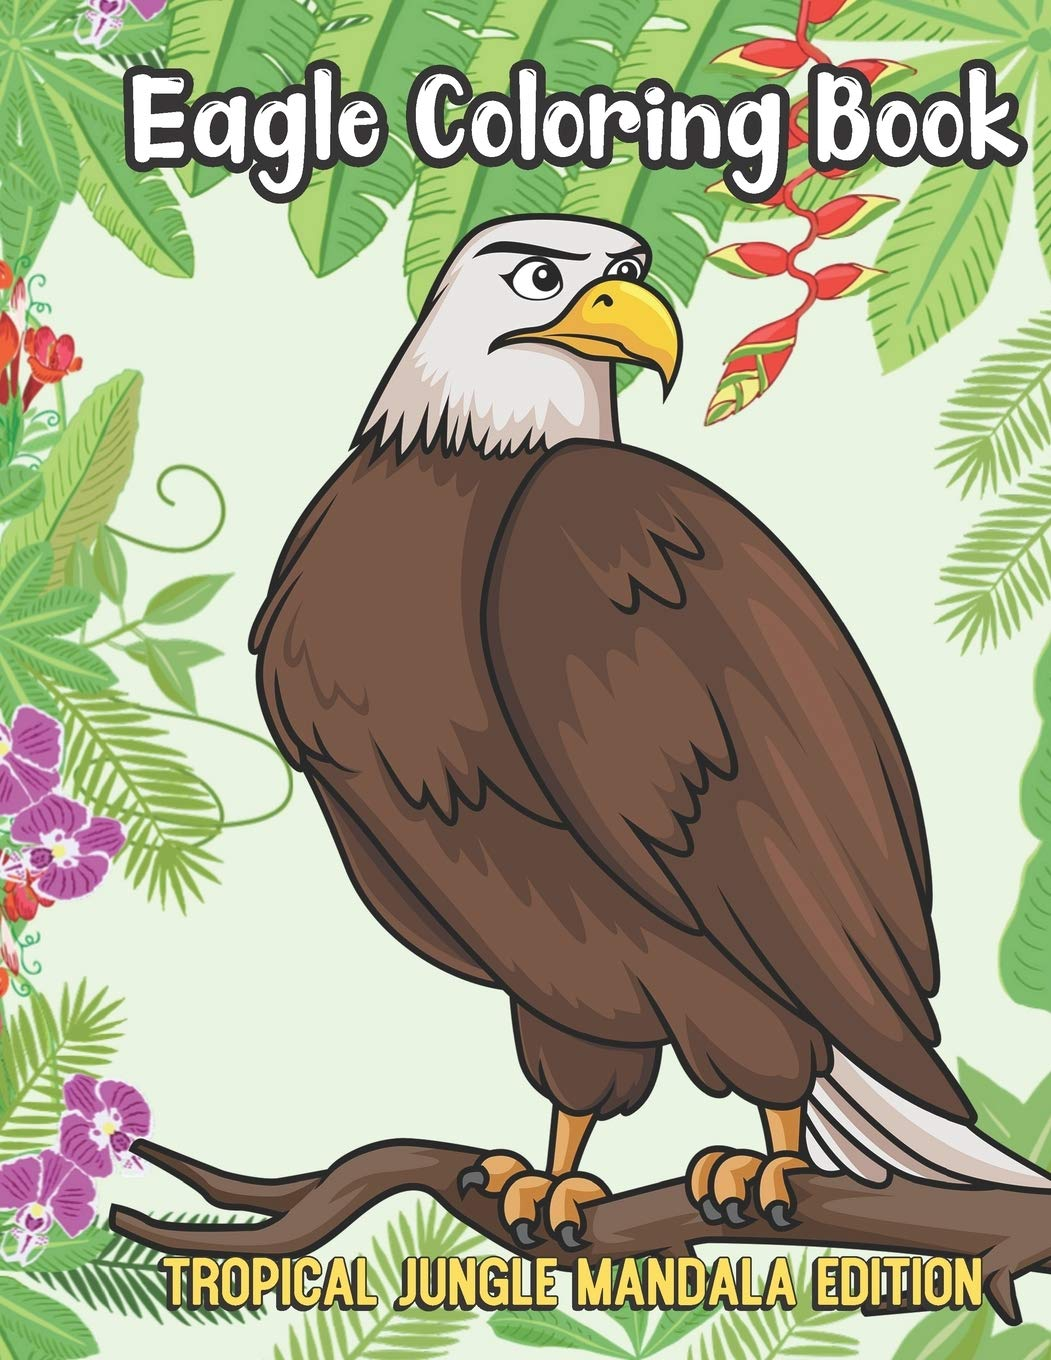 Free Printable Bald Eagle Coloring Pages For Kids | Bird coloring ... | 1360x1051